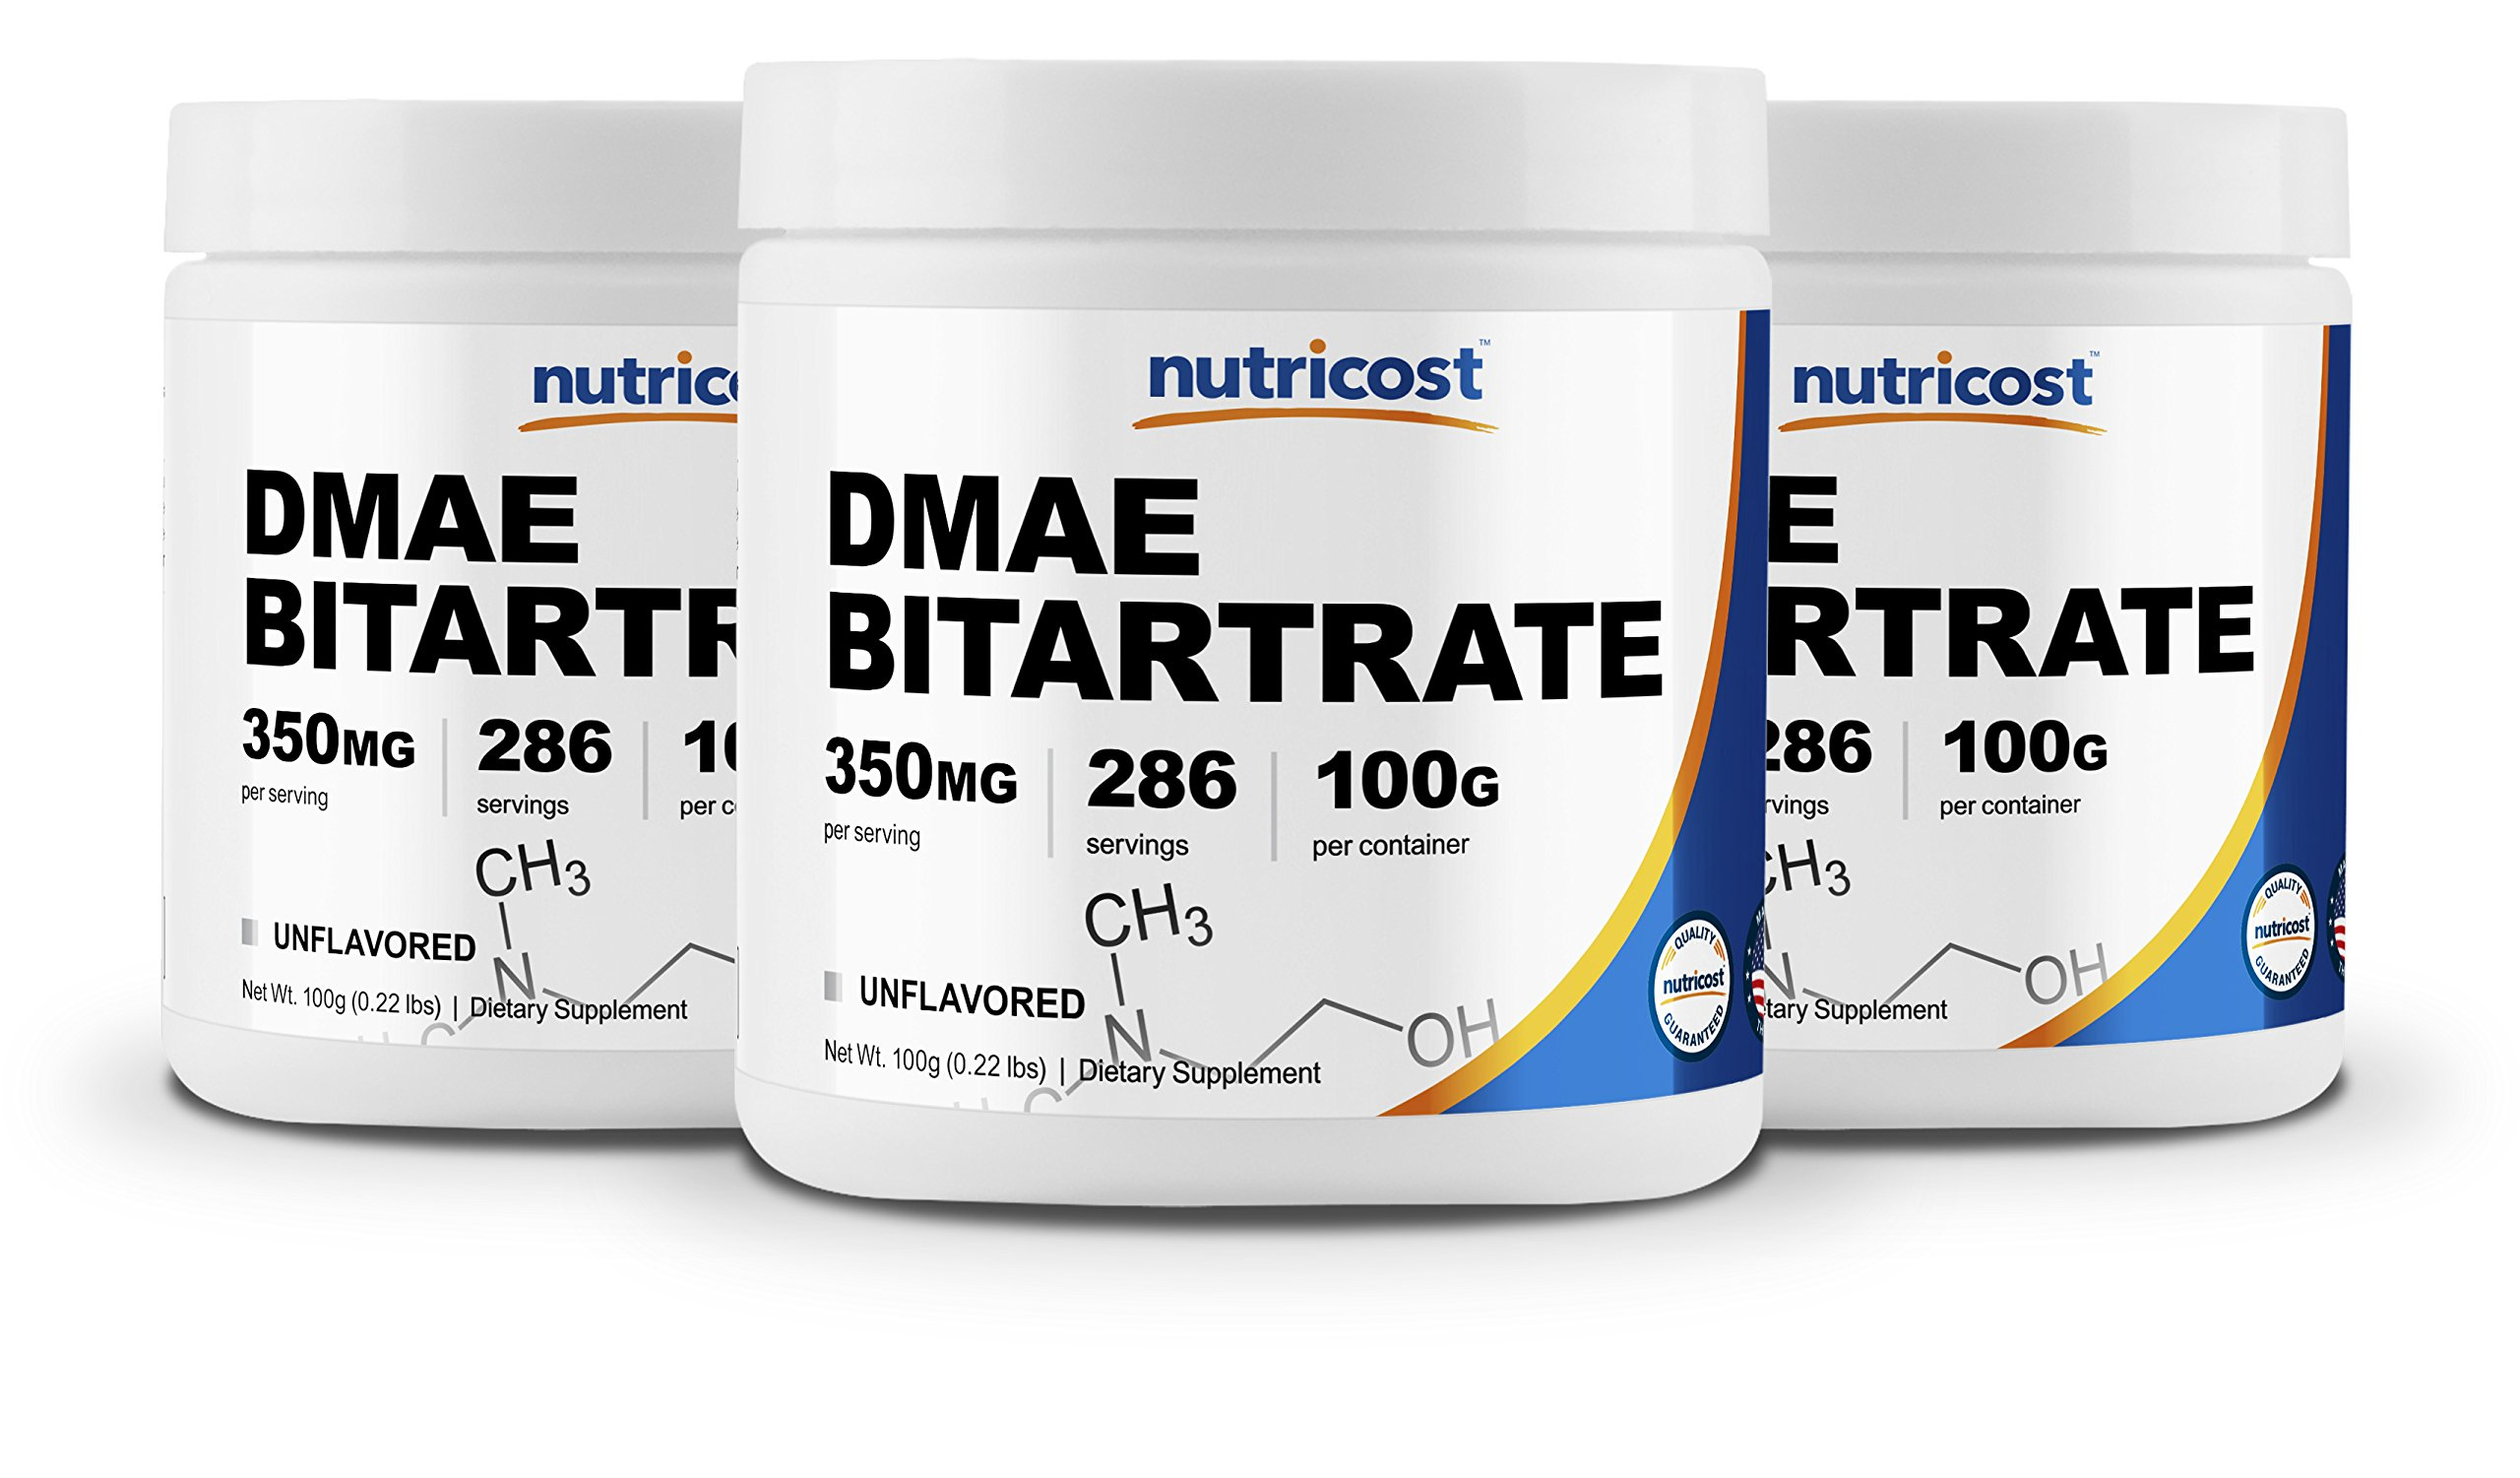 Nutricost Pure DMAE-Bitartrate Powder 100G (3 Bottles) by Nutricost